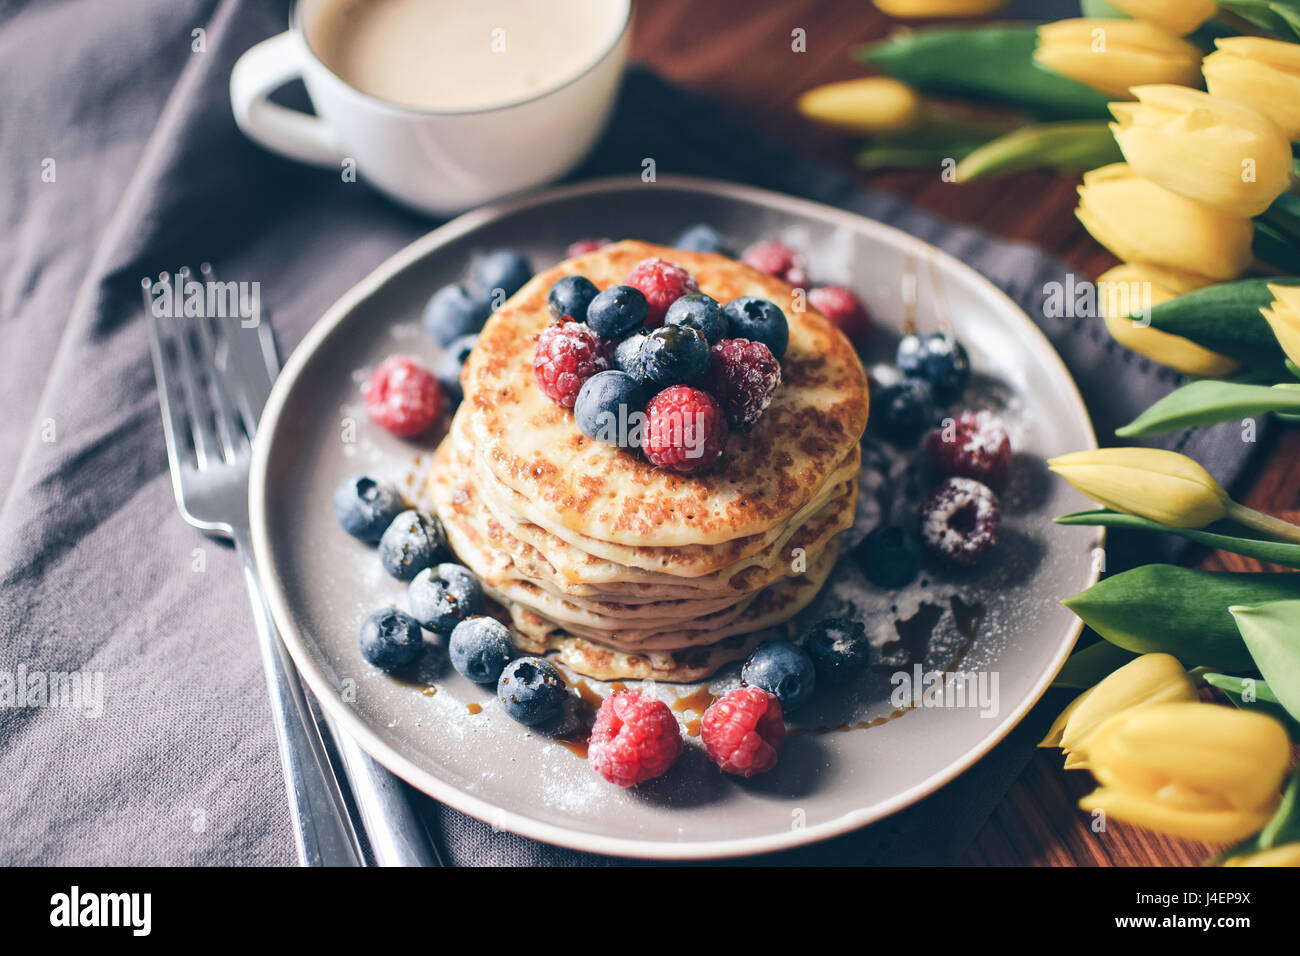 Breakfast variations. Pancakes with berries and stroop syrup. - Stock Image